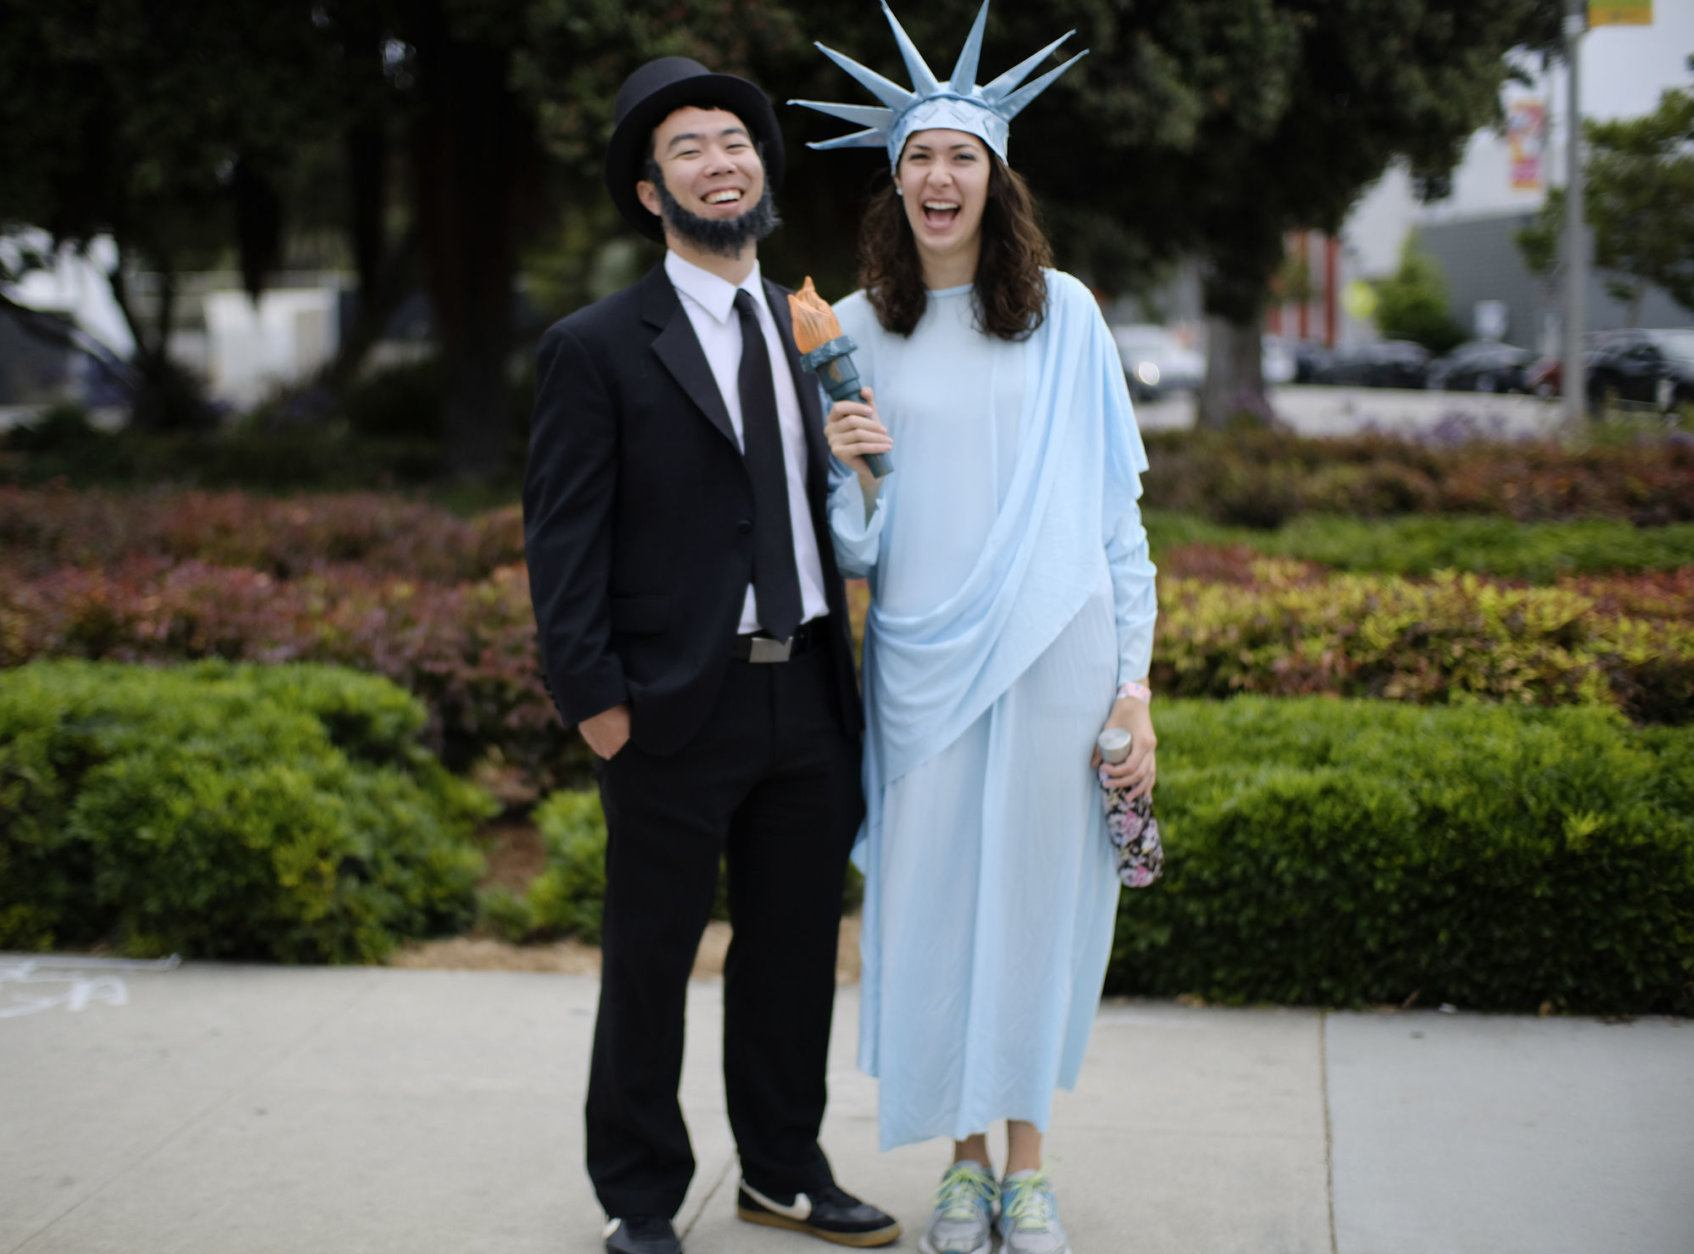 Christian Tomita, left and Erin Wells arrive dressed as Abraham Lincoln and Lady Liberty to participate in the Santa Monica Fourth of July parade Thursday, July 4, 2019 in Santa Monica, Calif. (AP Photo/Richard Vogel)